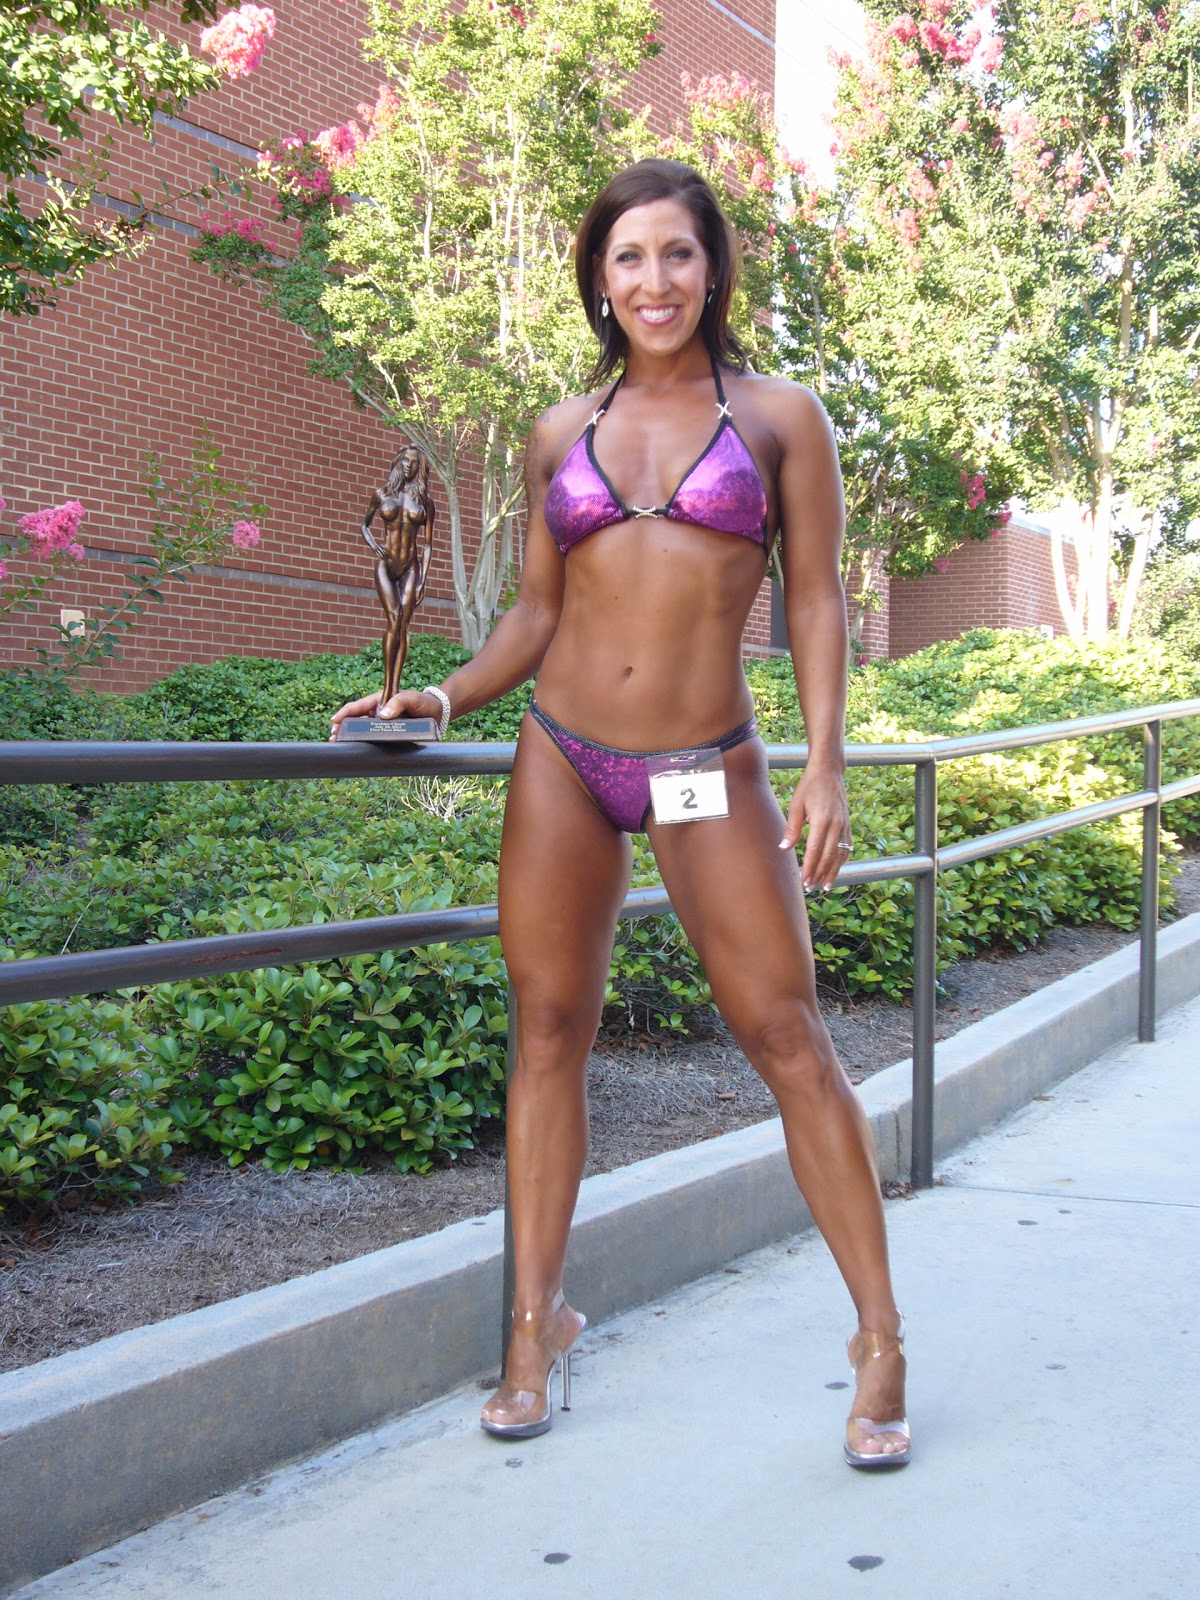 All Natural Beauty Products For: All Natural Figure Competitor